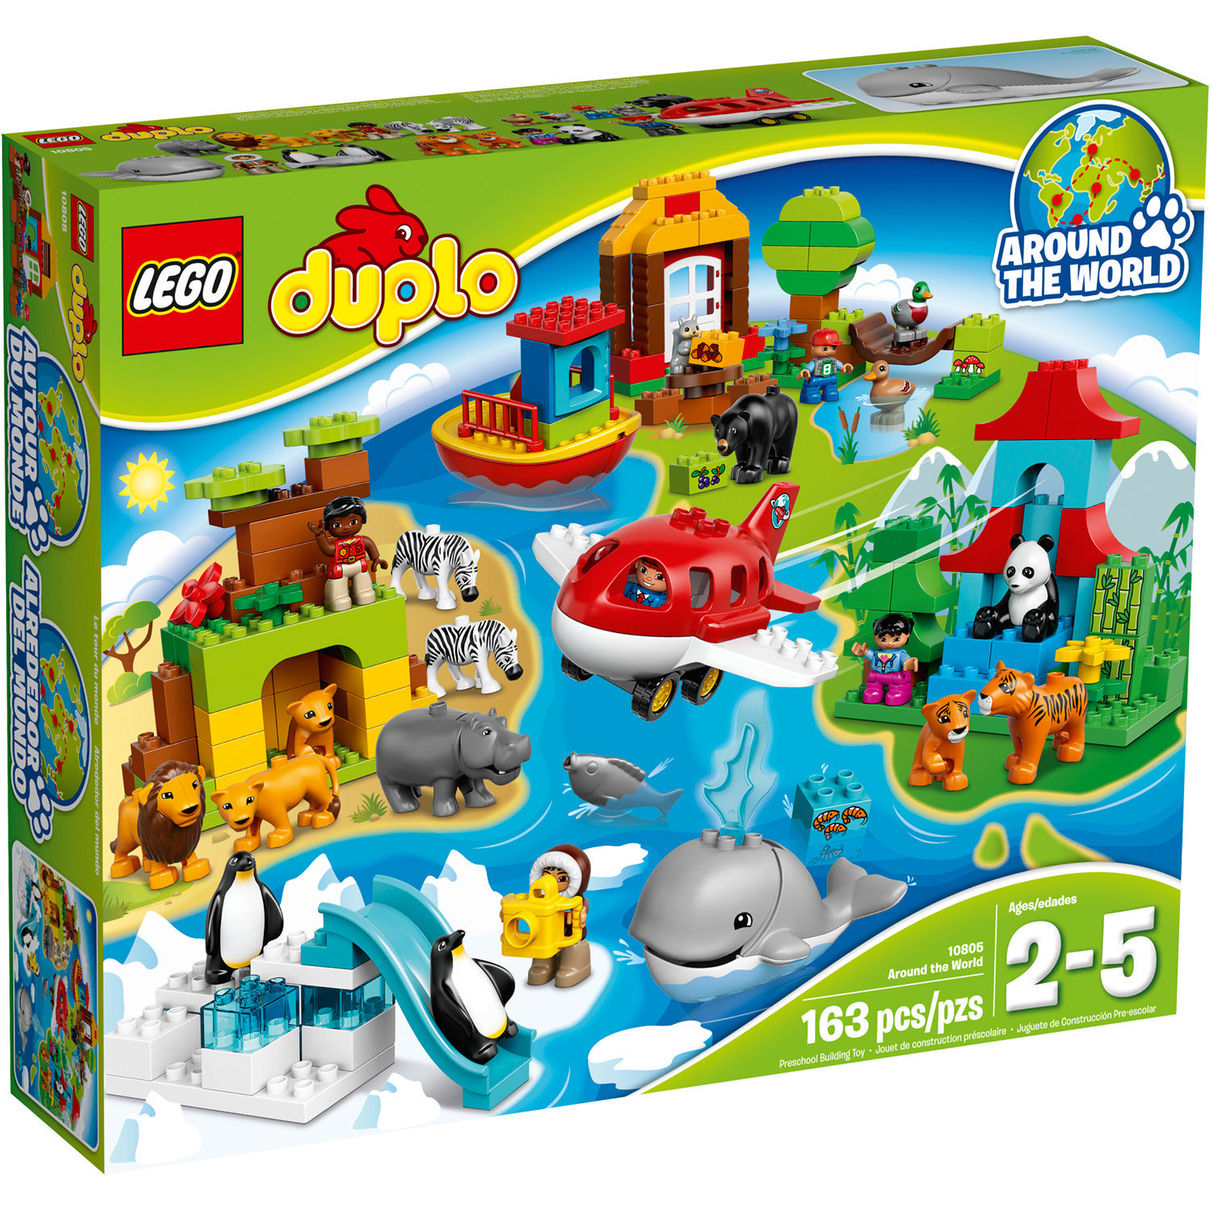 Lego Duplo Around The World Playone